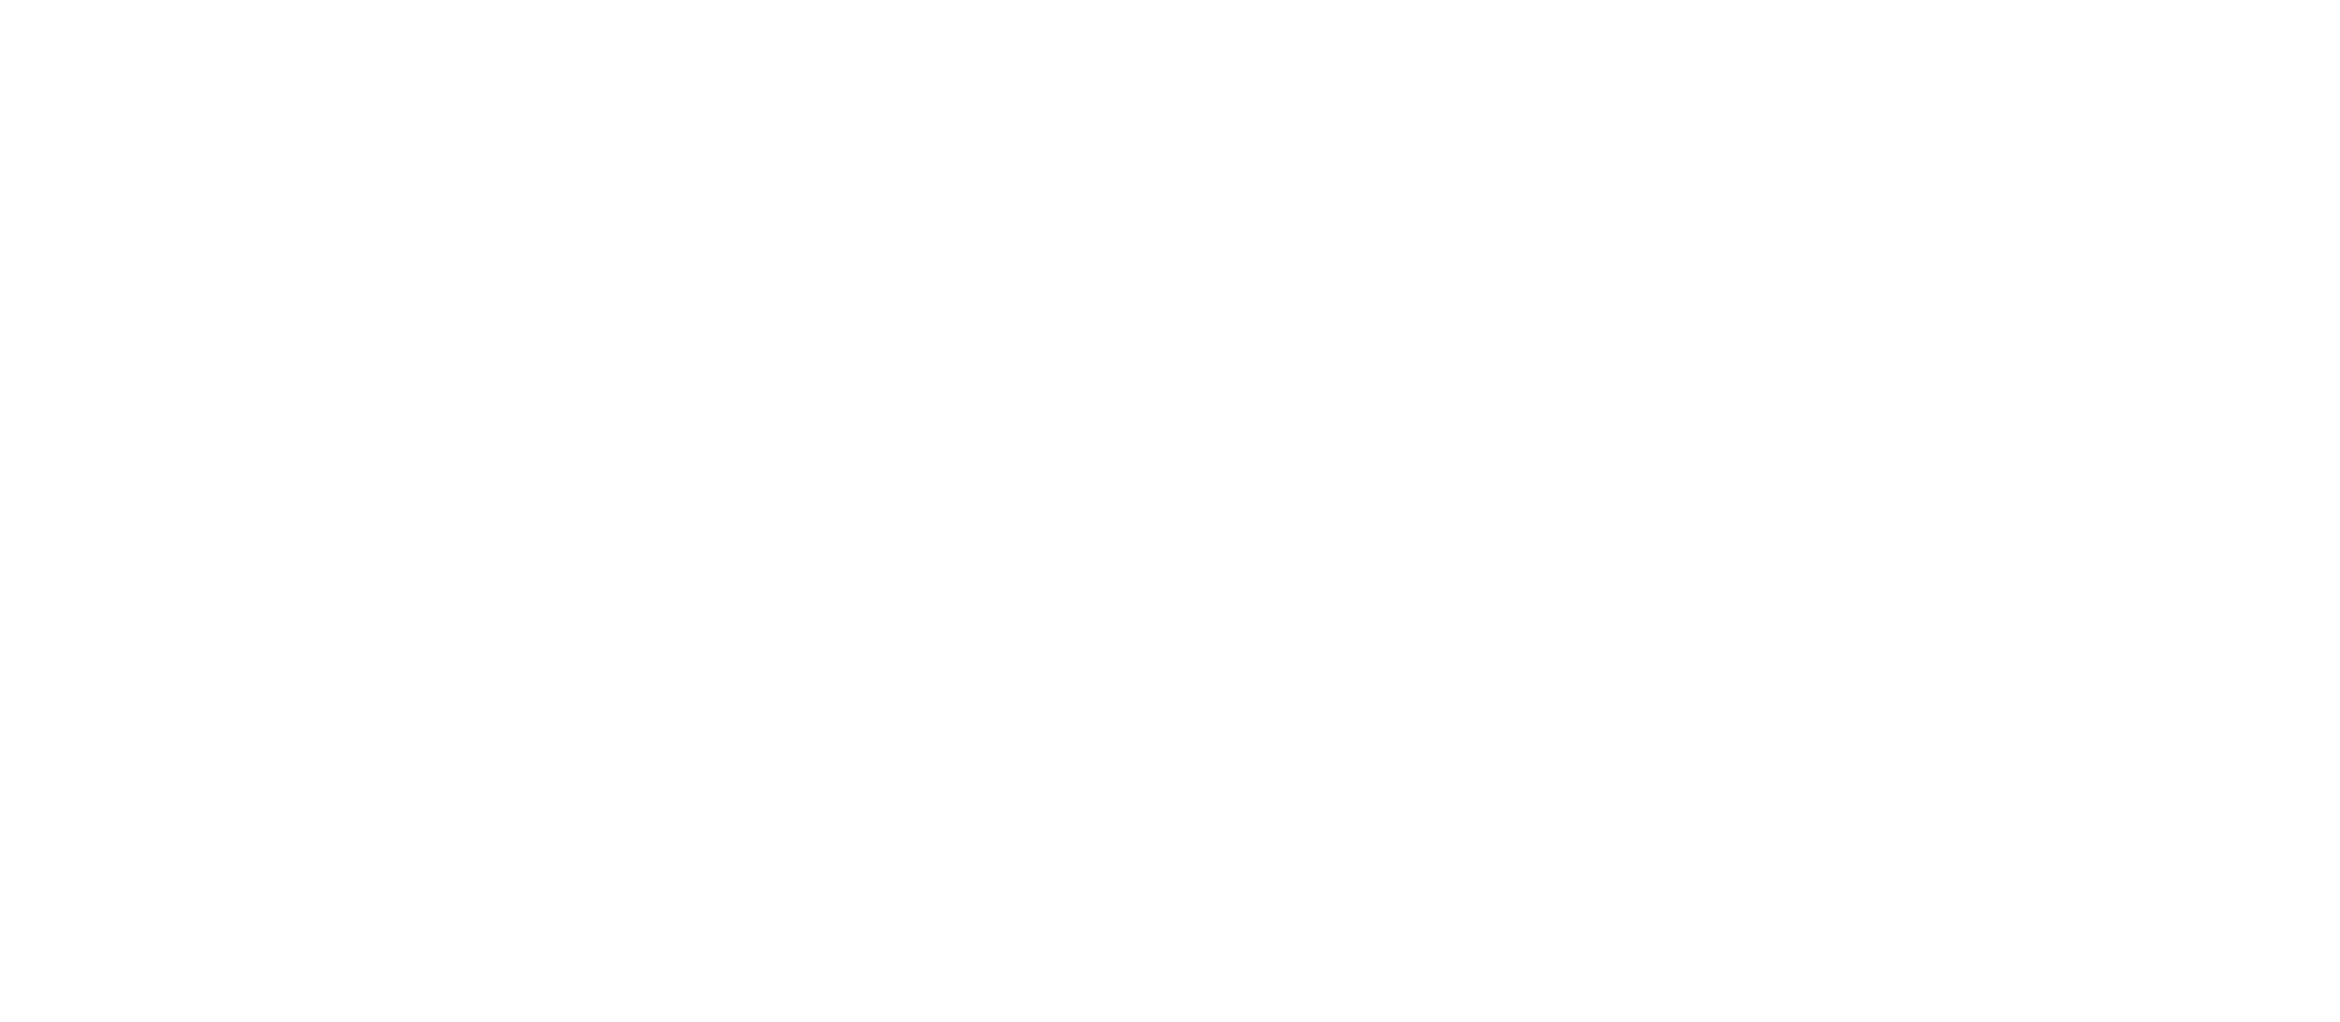 State Law & Burial Vaults? | Nosek-McCreery Funeral Home